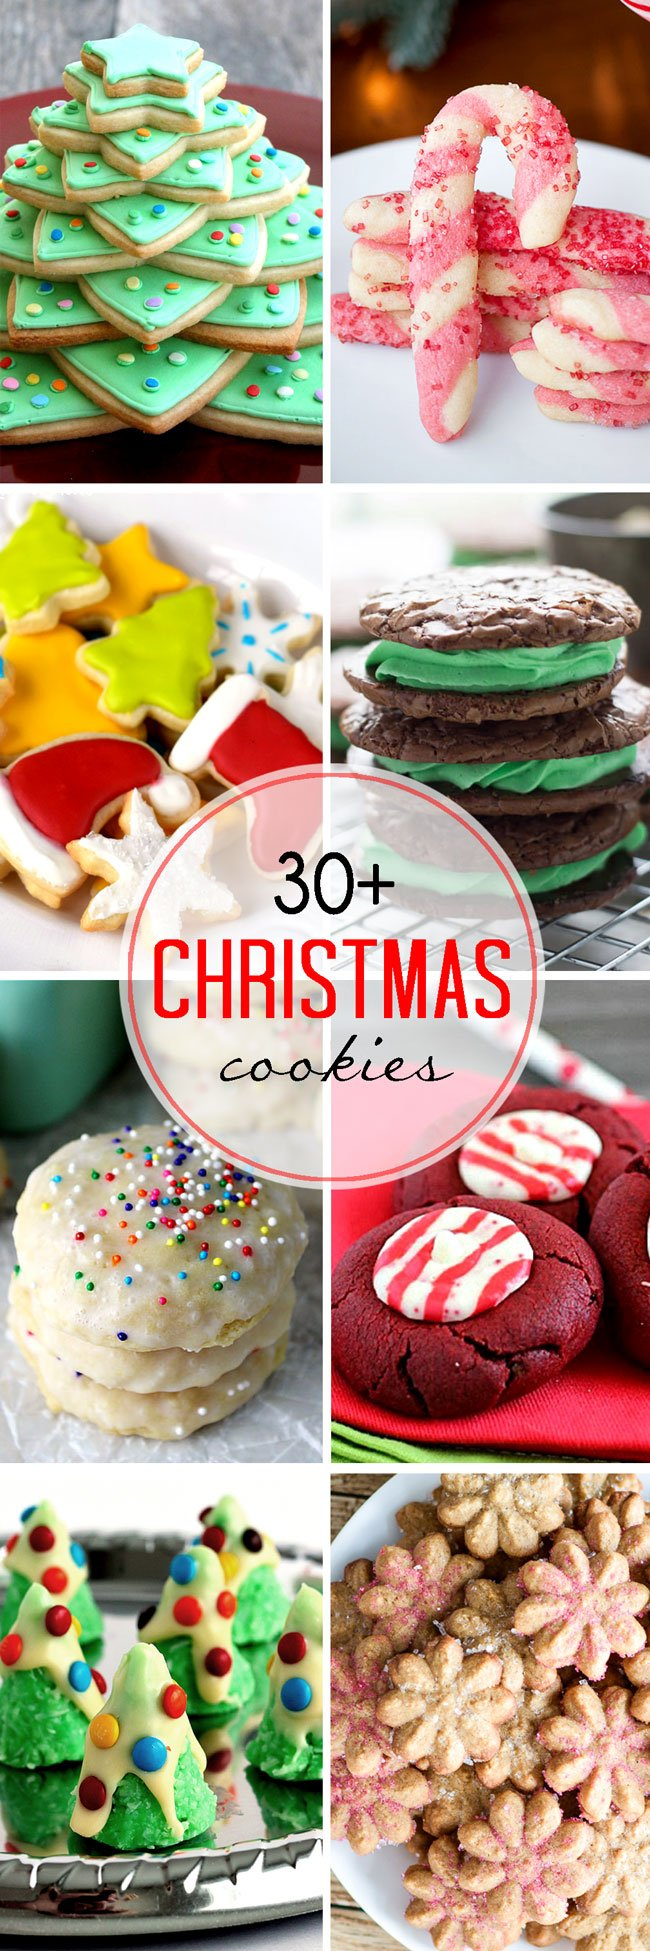 30+ Christmas Cookies - over 30 amazingly delicious holiday cookie recipes!